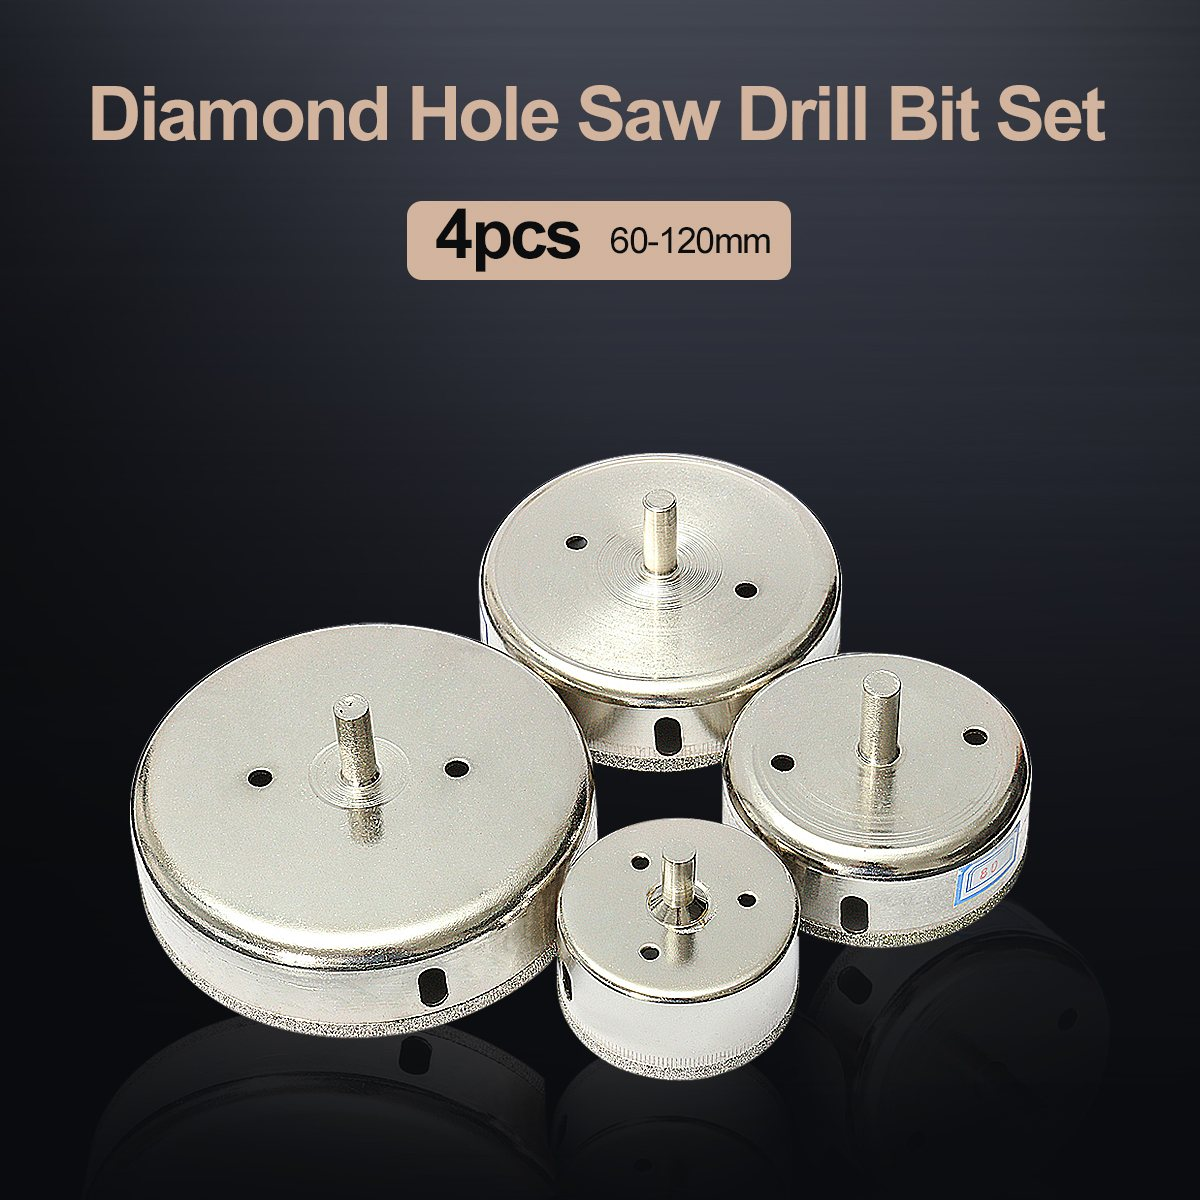 4pcs 60/80/100/120 mm Diamond Hole Saw Tile Set Drill Bit for Ceramic Glass Tile Cutting Porcelain Marble Drill Bit 10pcs set diamond tool drill bit hole saw for glass ceramic marble tile 3 50mm power tool